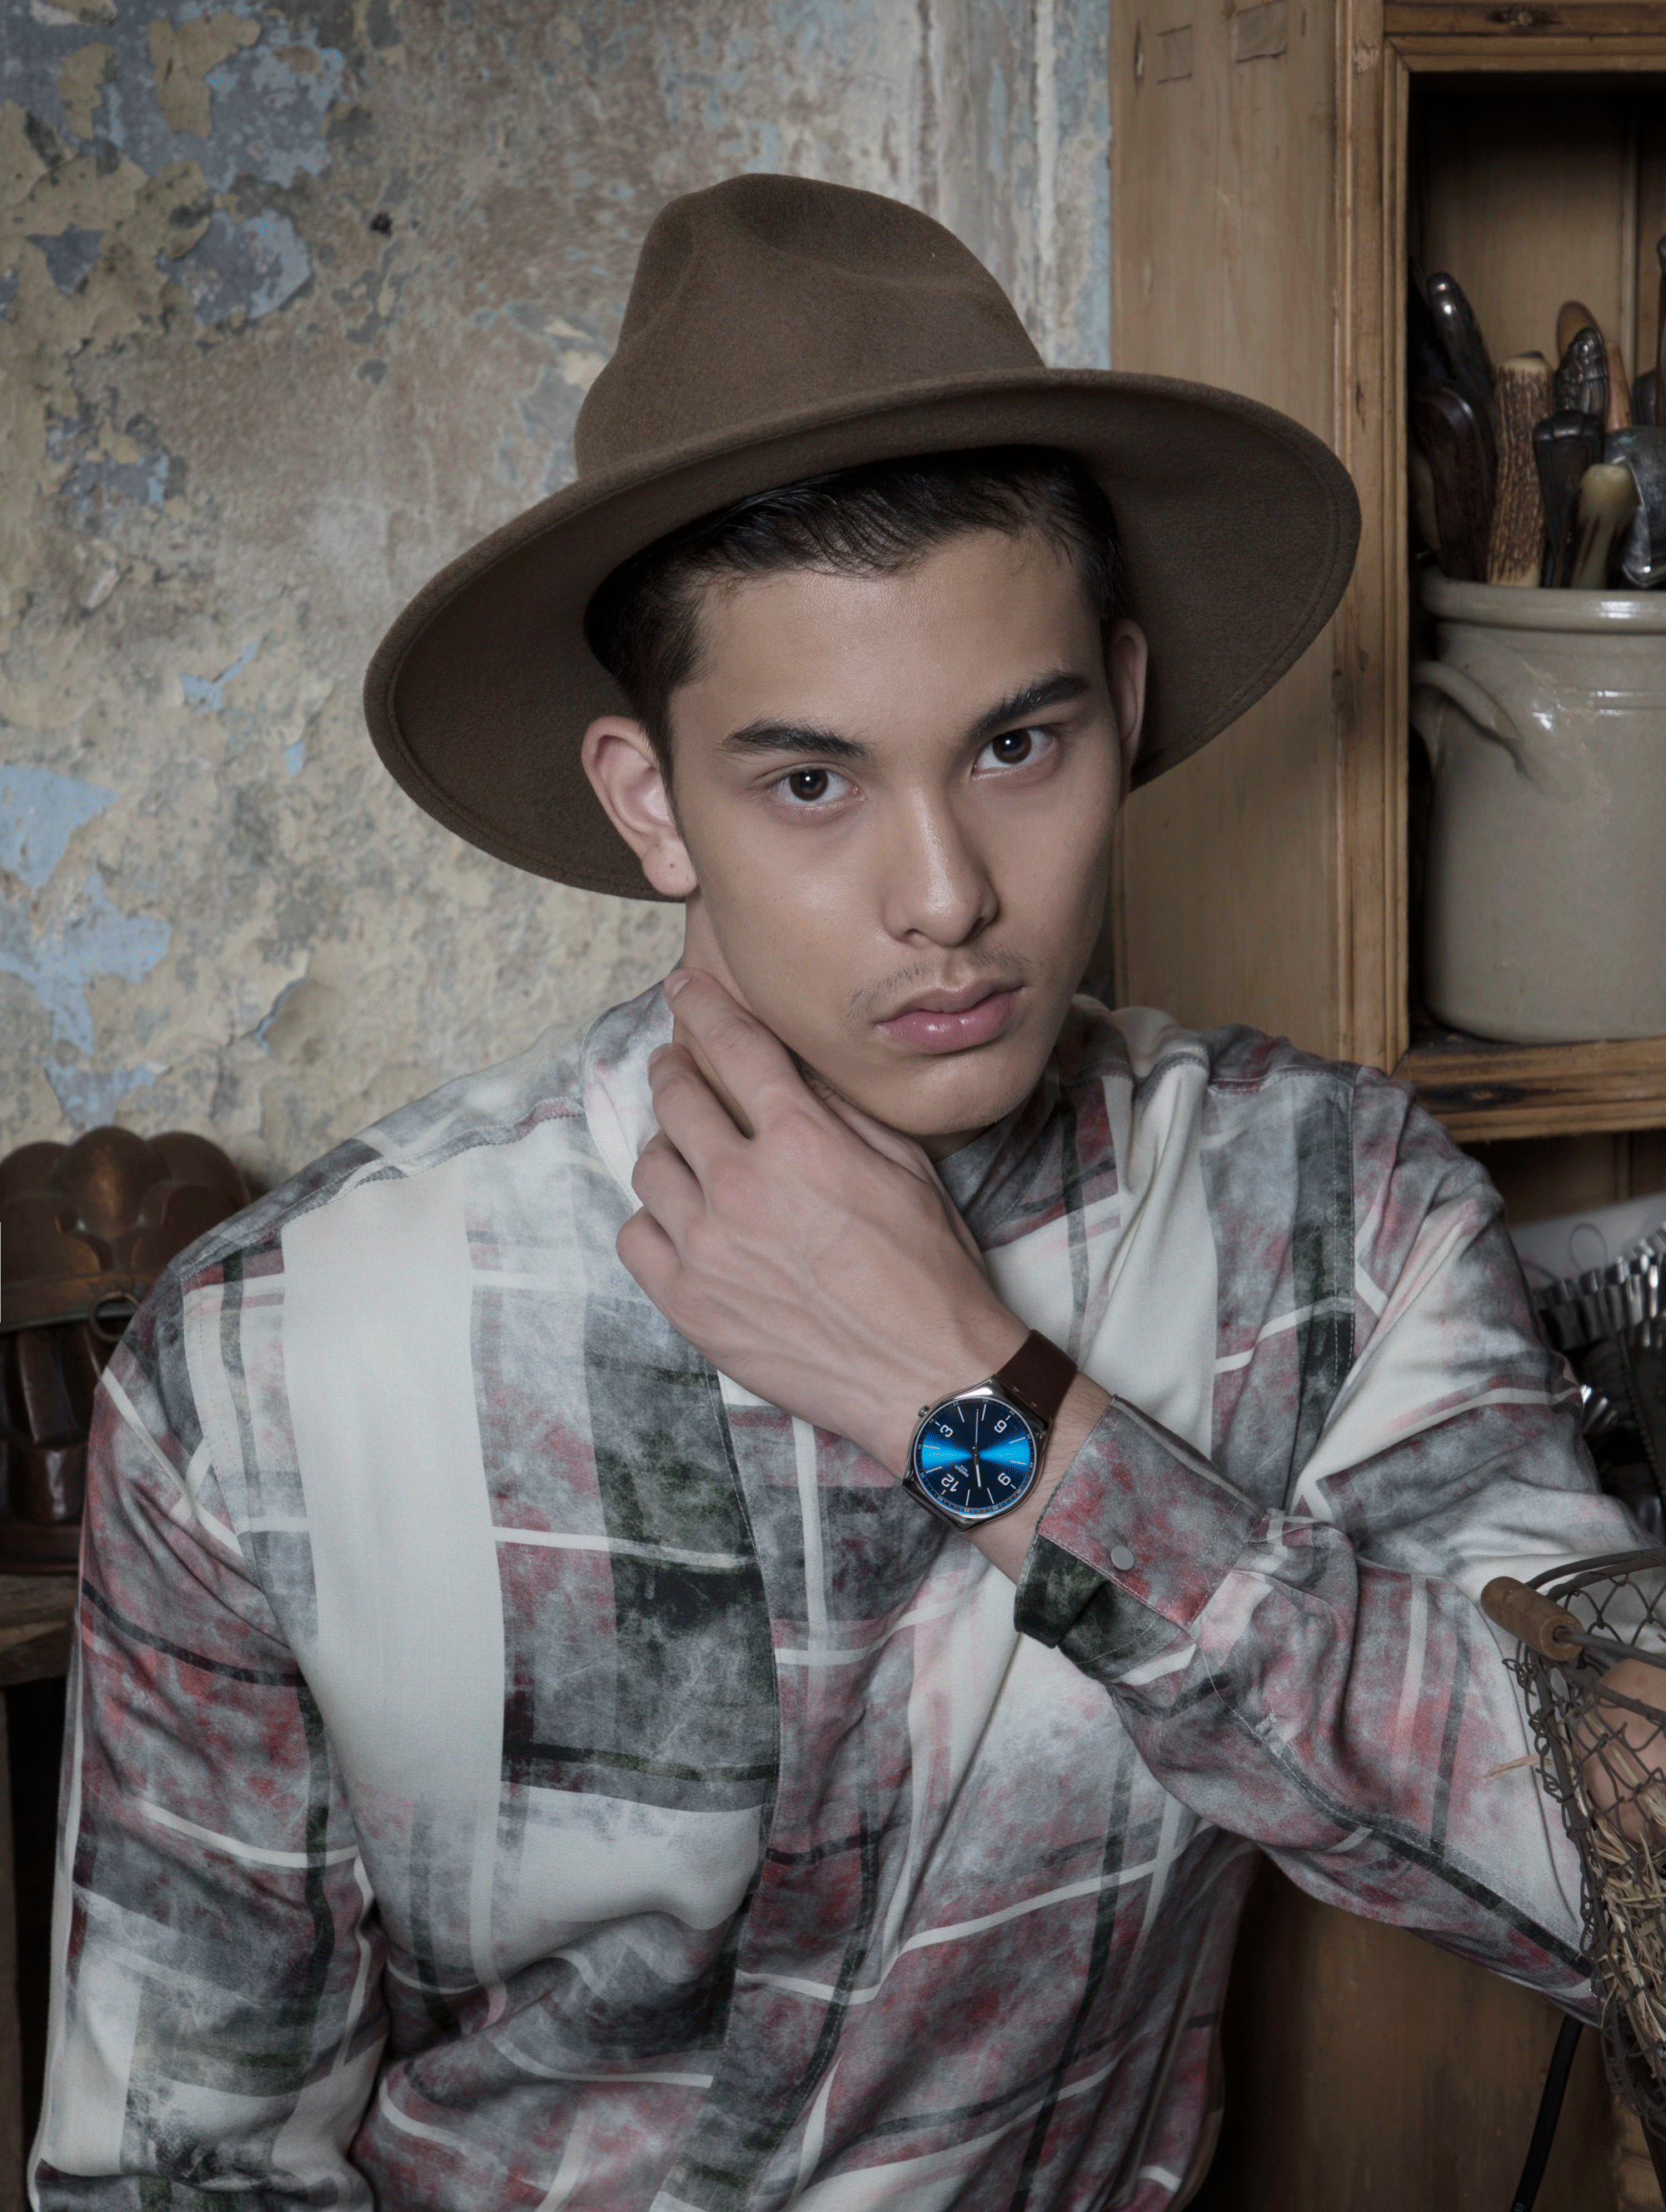 clothes : Emporio Armani / hat : Famosa Andina  watch : SWATCH - SKINWIND